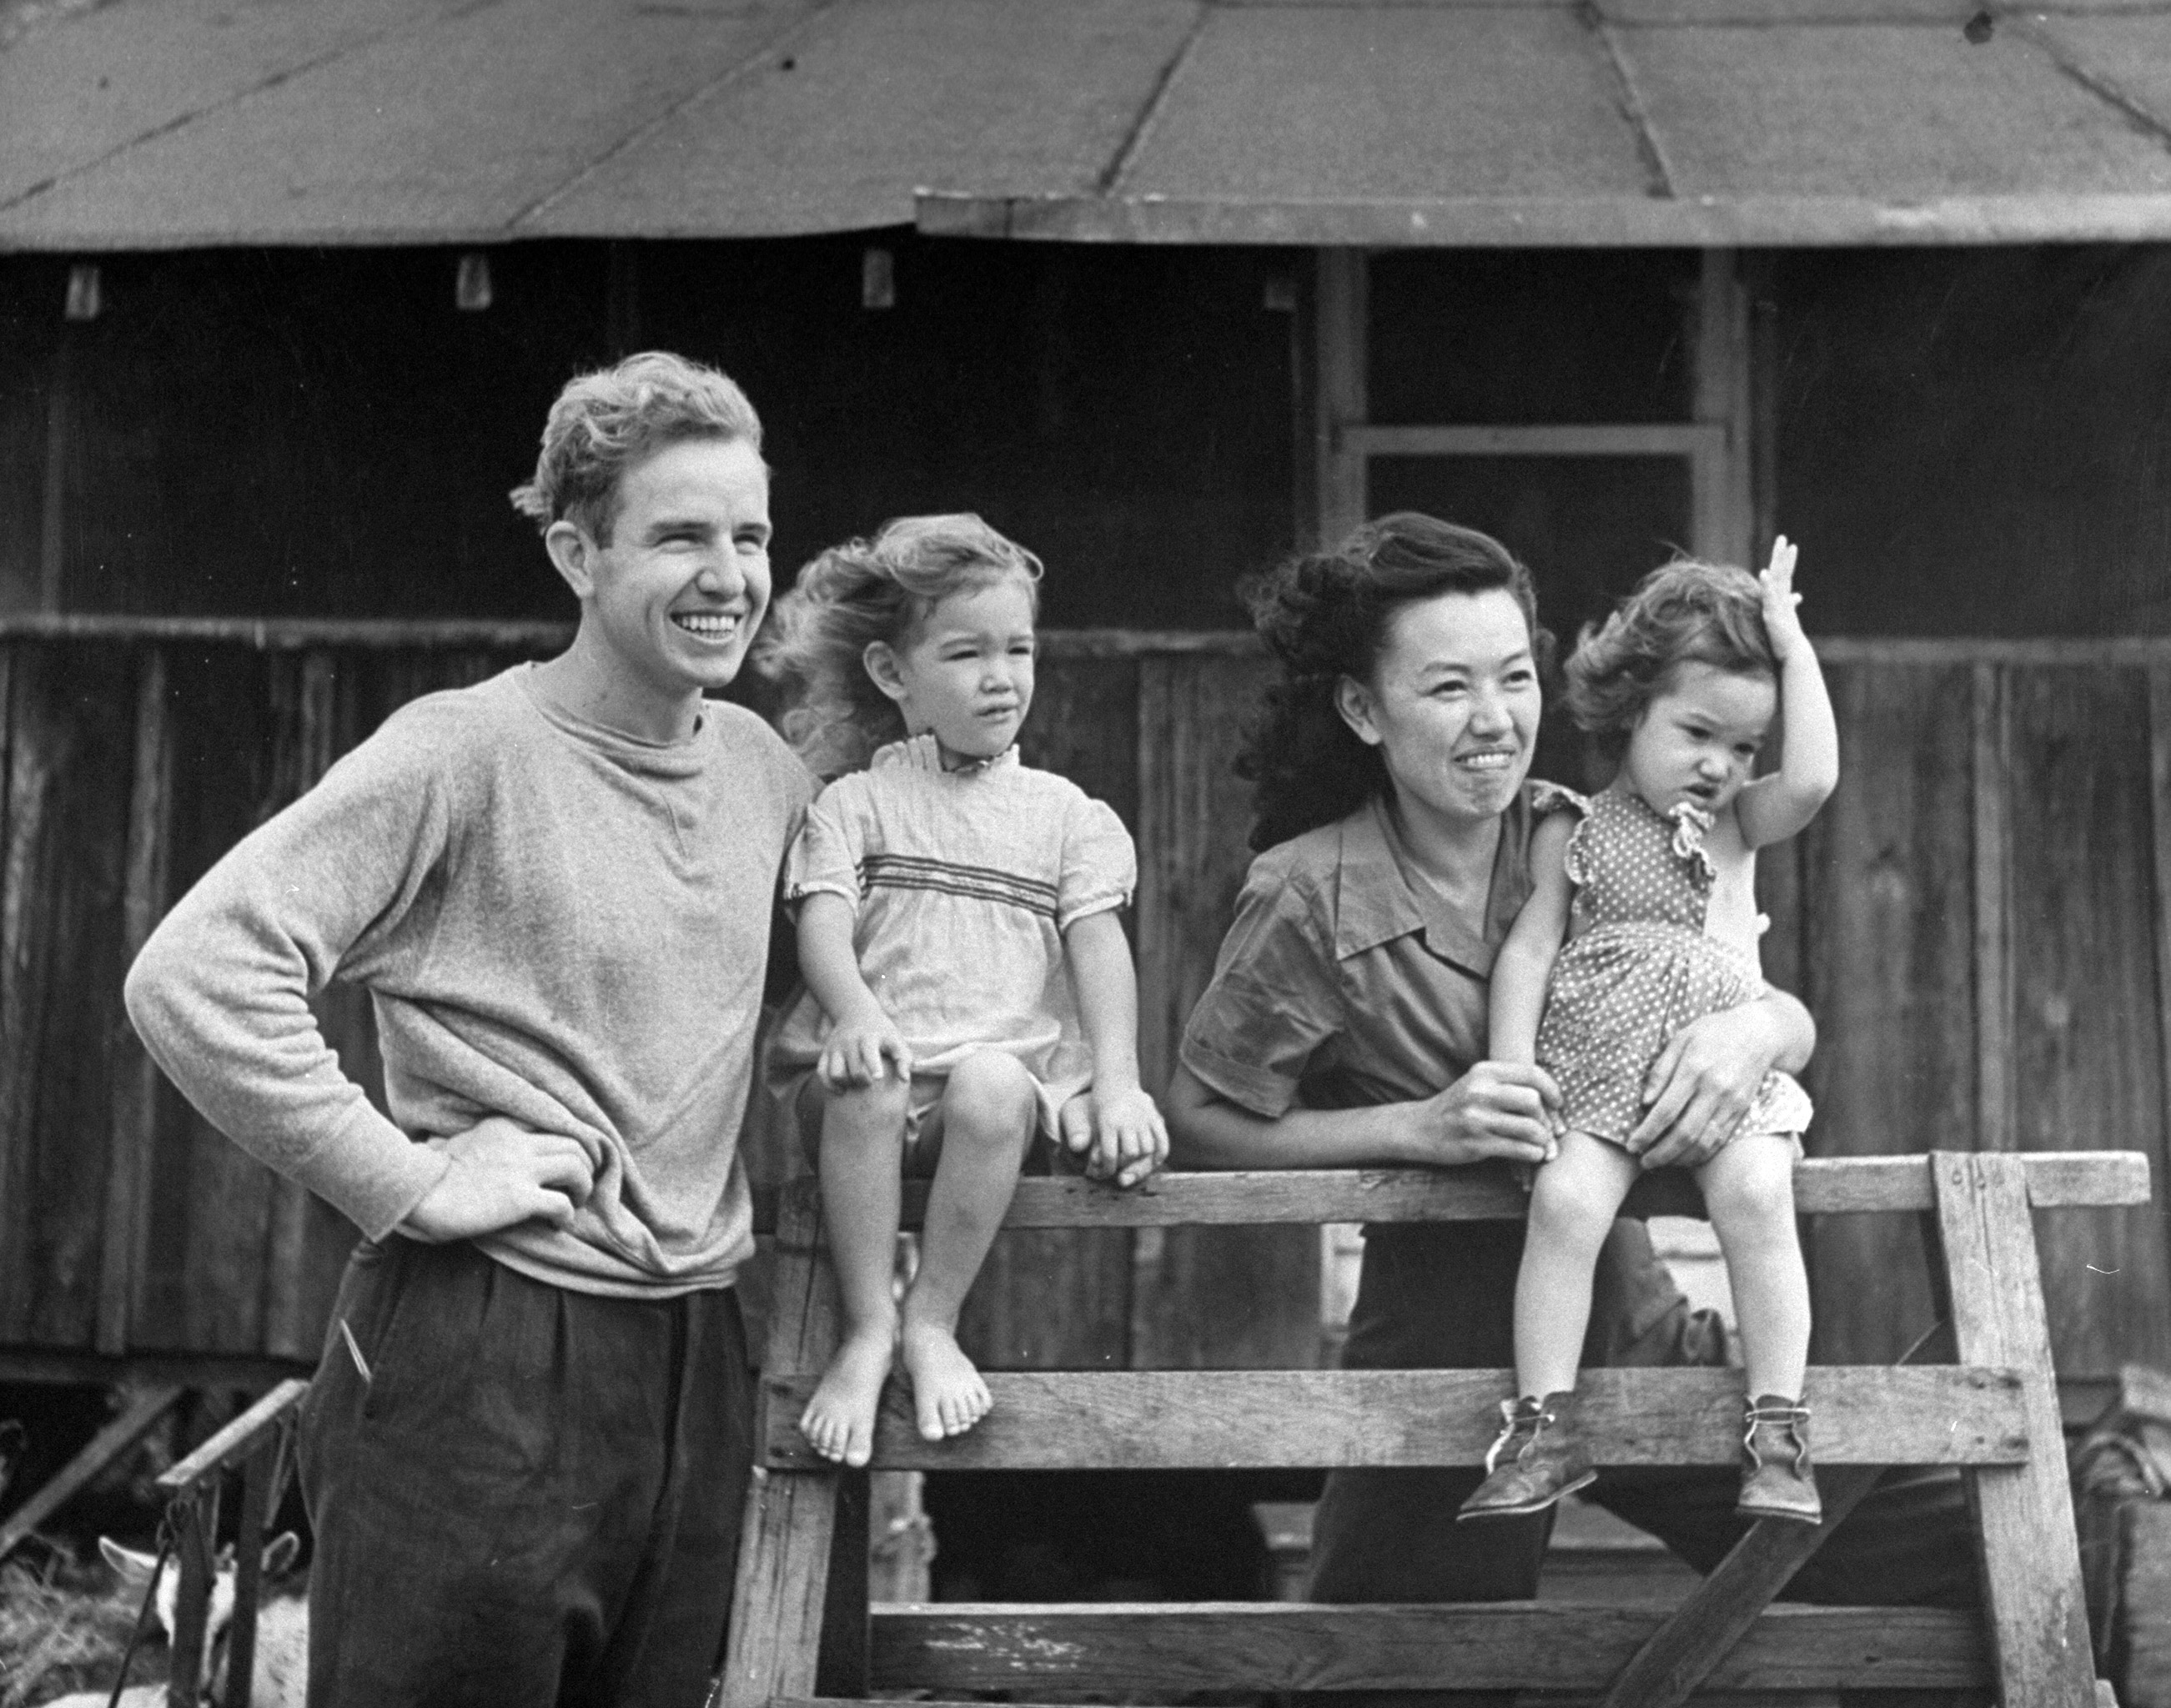 <b>Caption from LIFE.</b> Indiana Quaker, Sam Lindley, married a Chinese Quaker and has two fair haired girls, Renie and Renda. He raises goats and works as librarian at the University of Hawaii. He studies Chinese, wants to visit China.